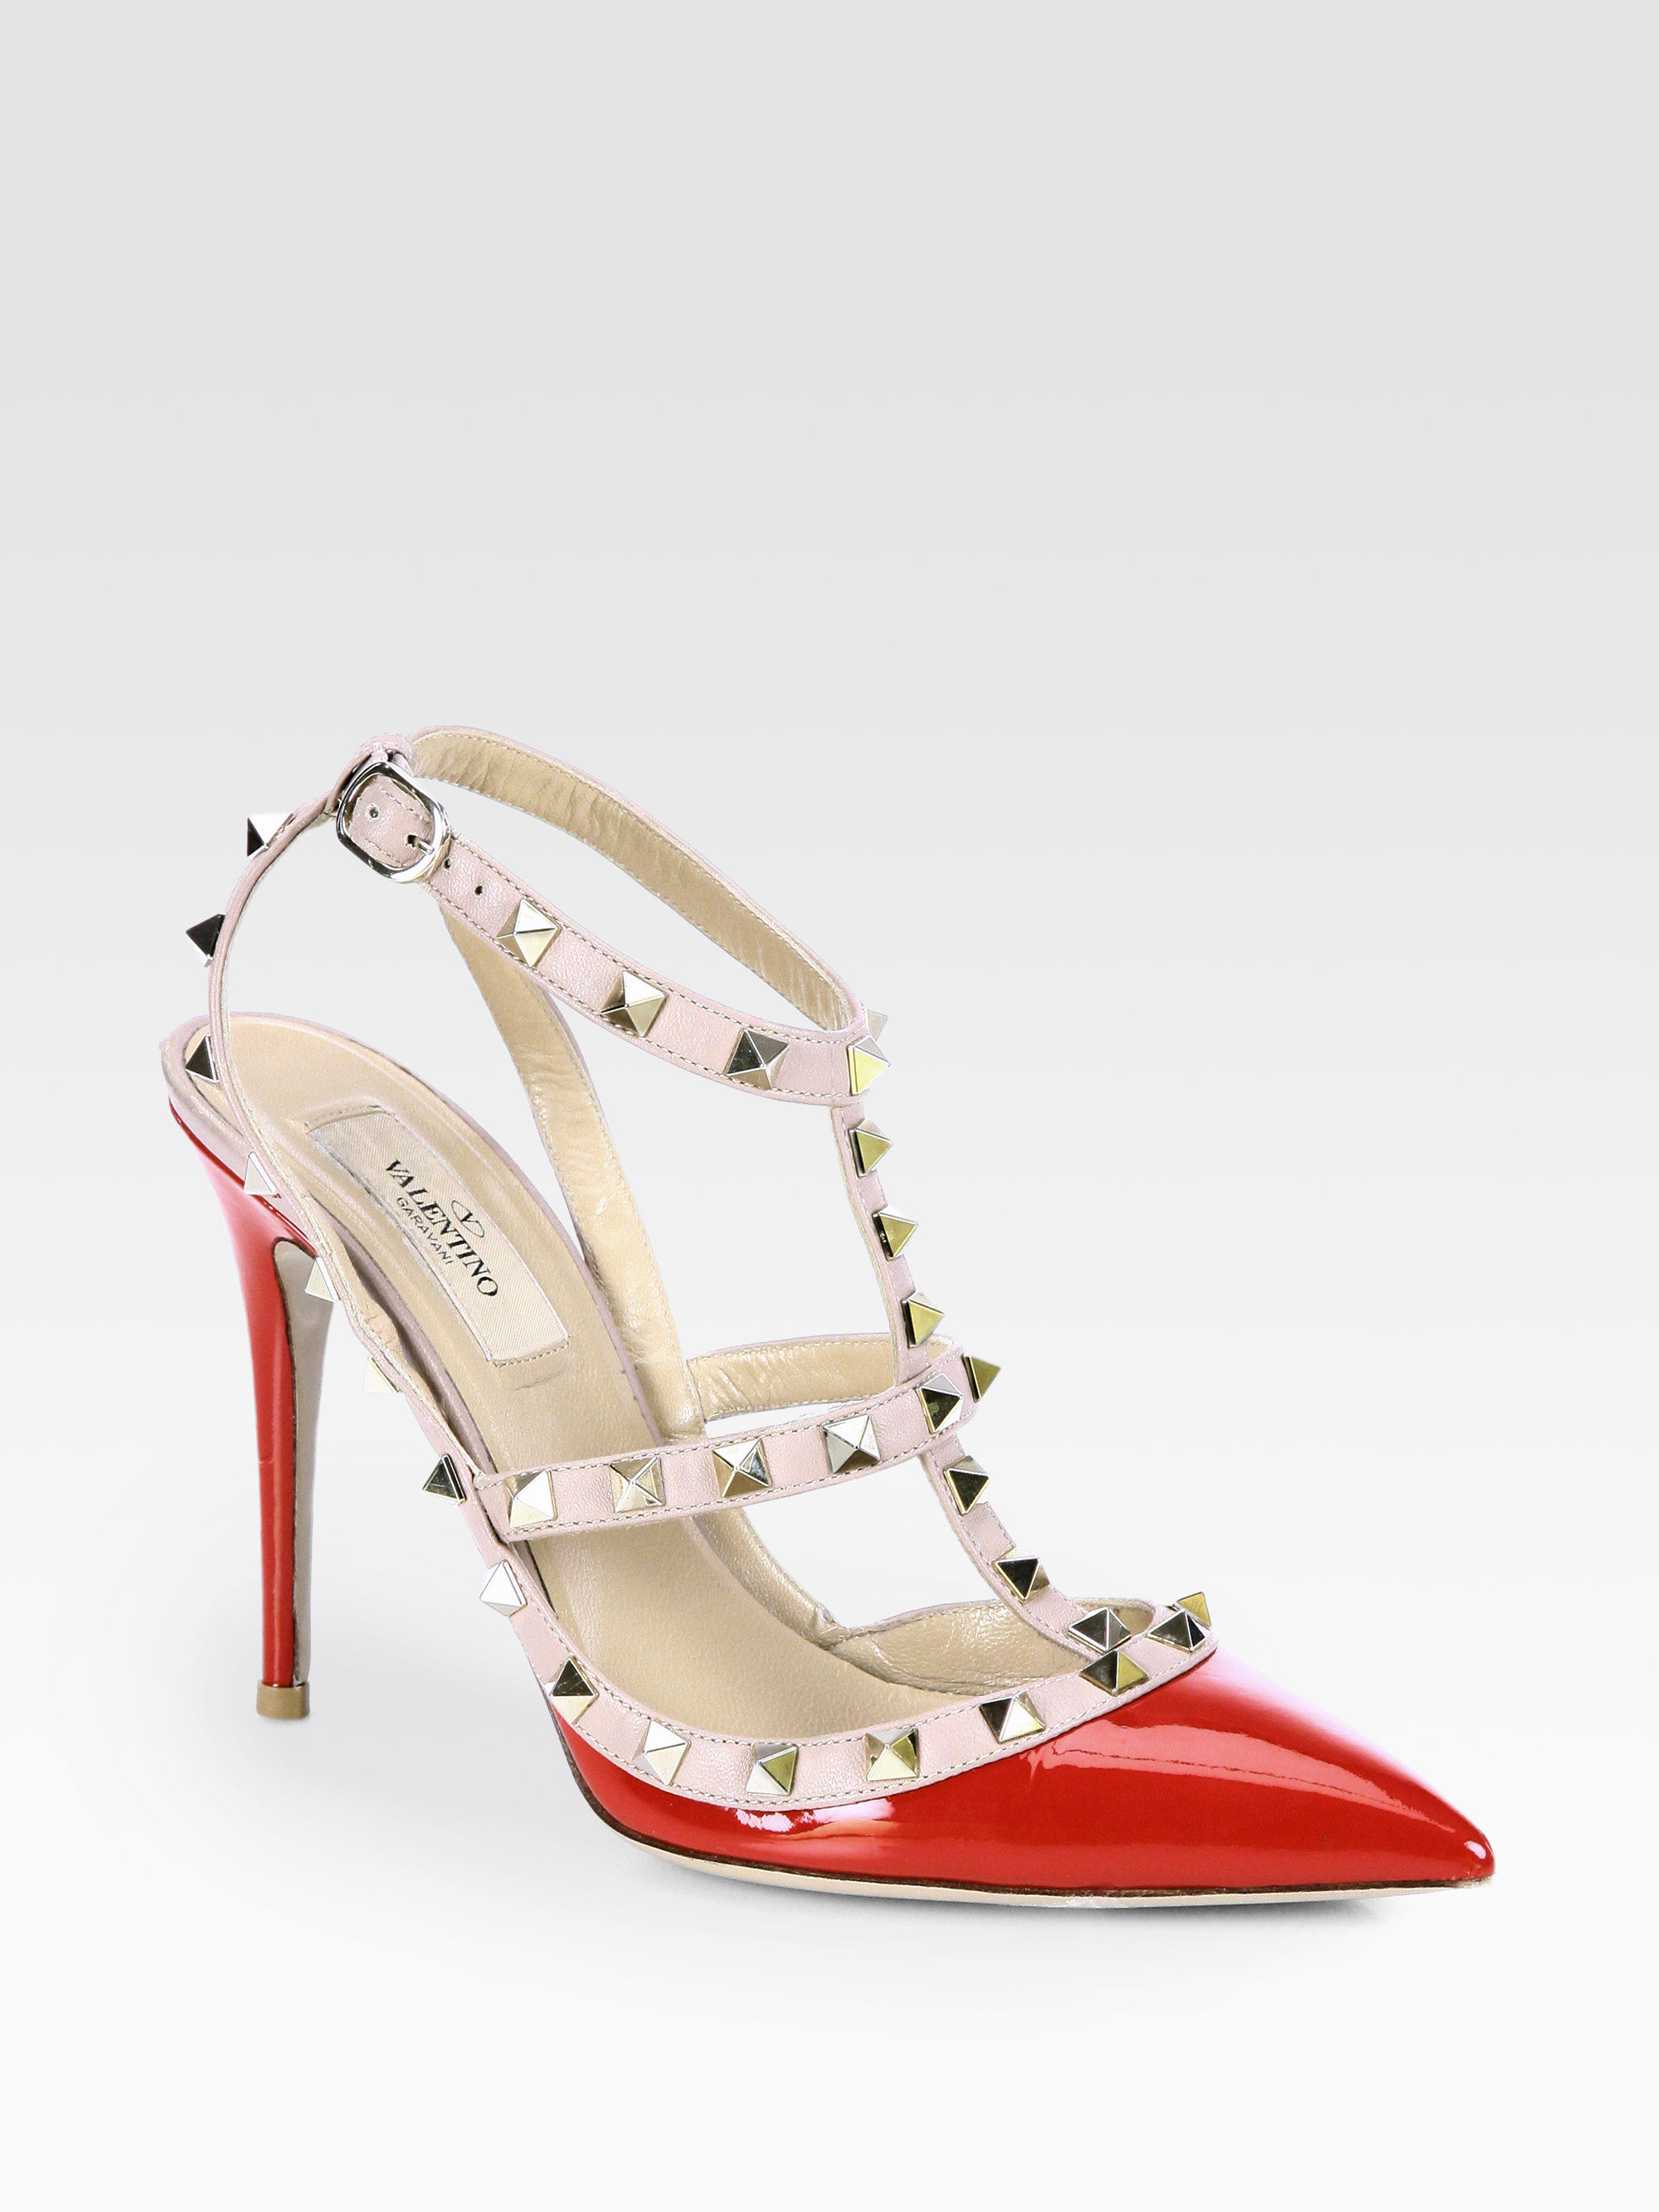 Valentino Patent Leather Rockstud Slingback Pumps In Red